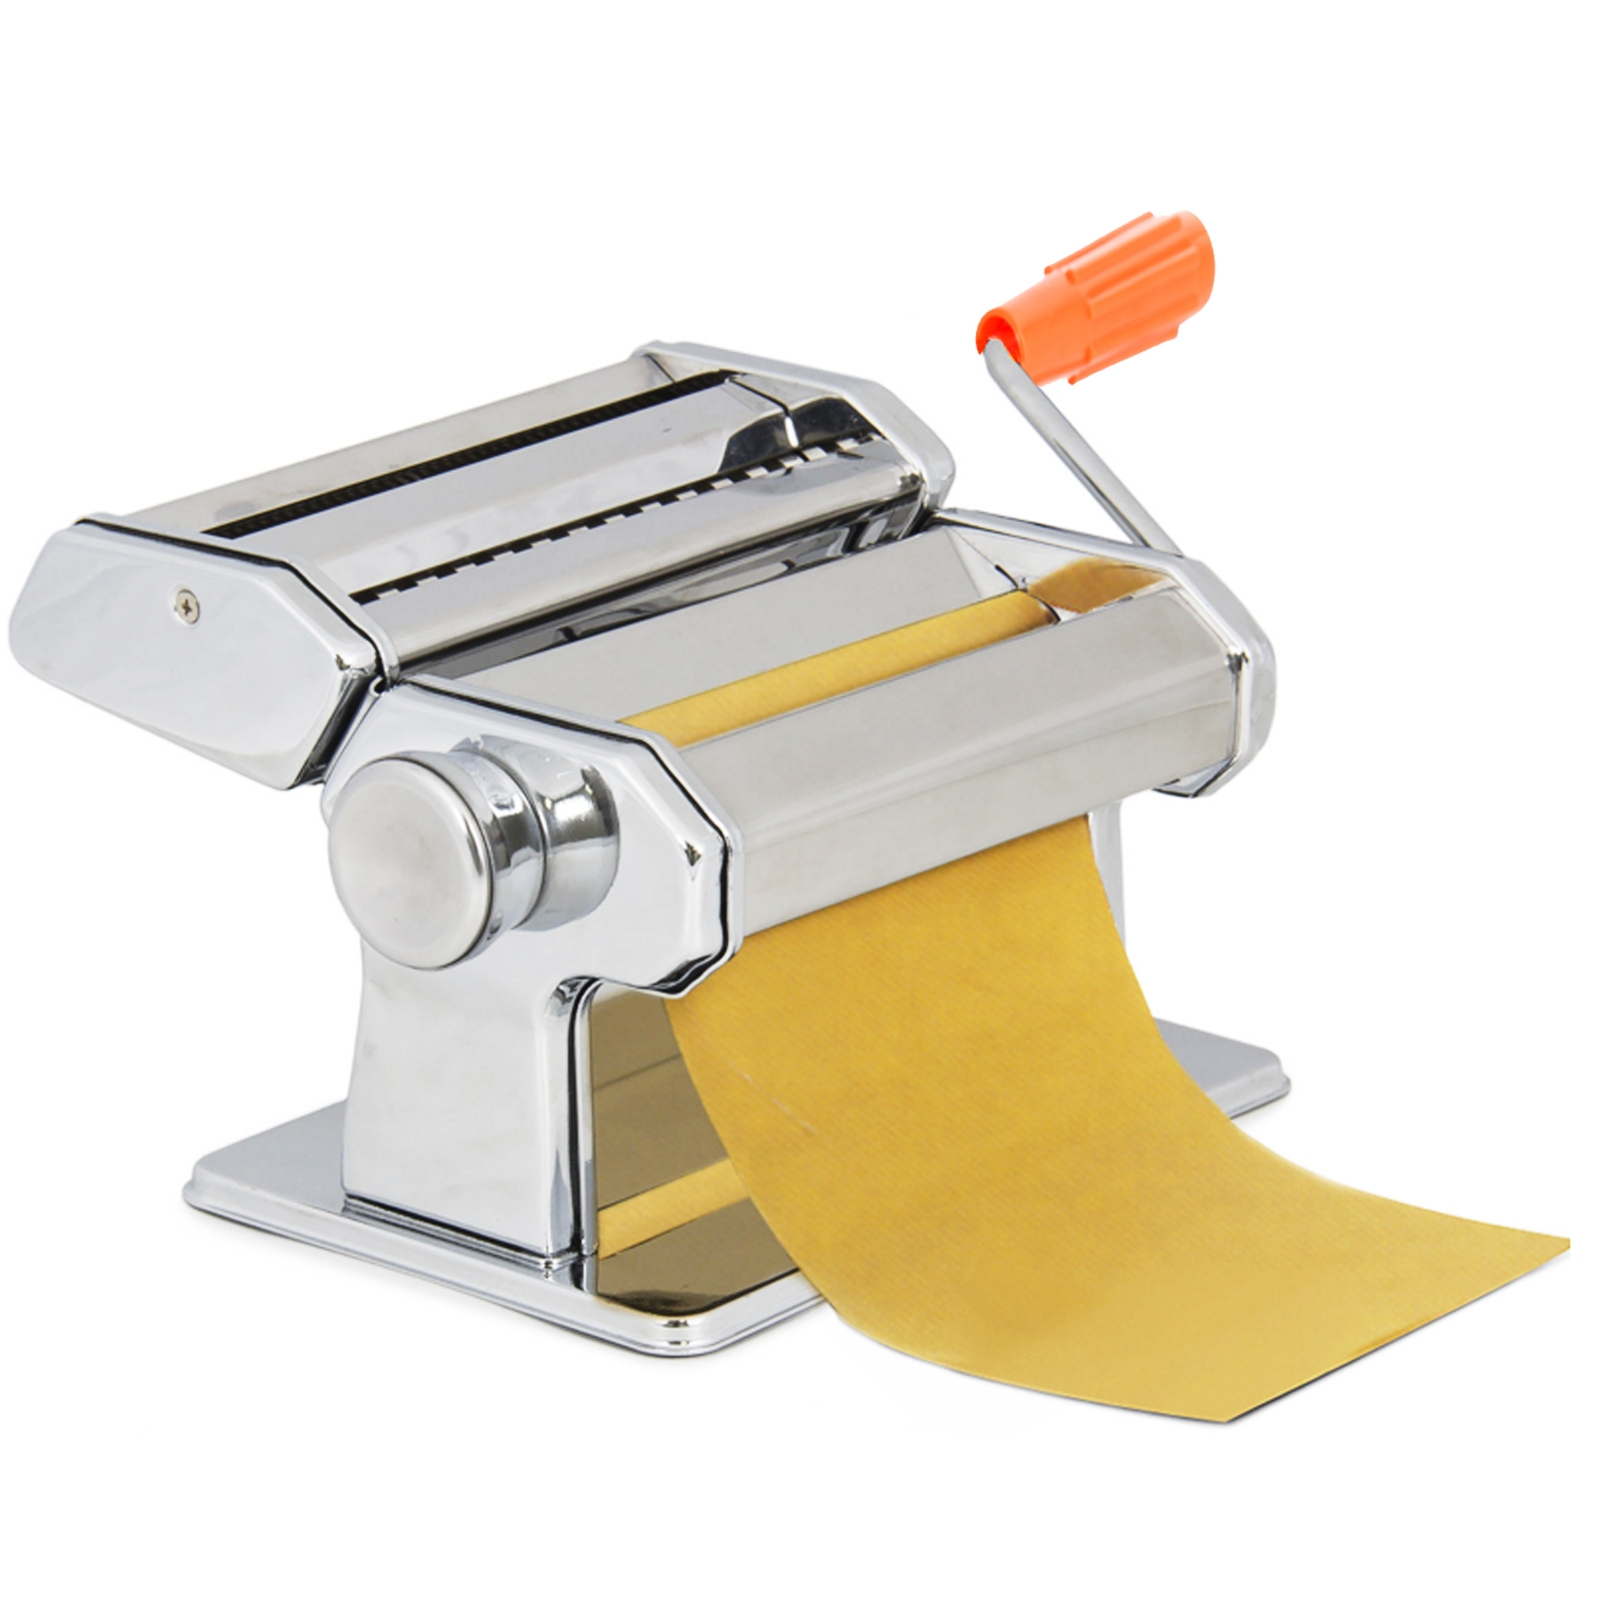 Homdox Pasta Maker Roller Machine, Fresh Noodle Maker ,Stainless Steel